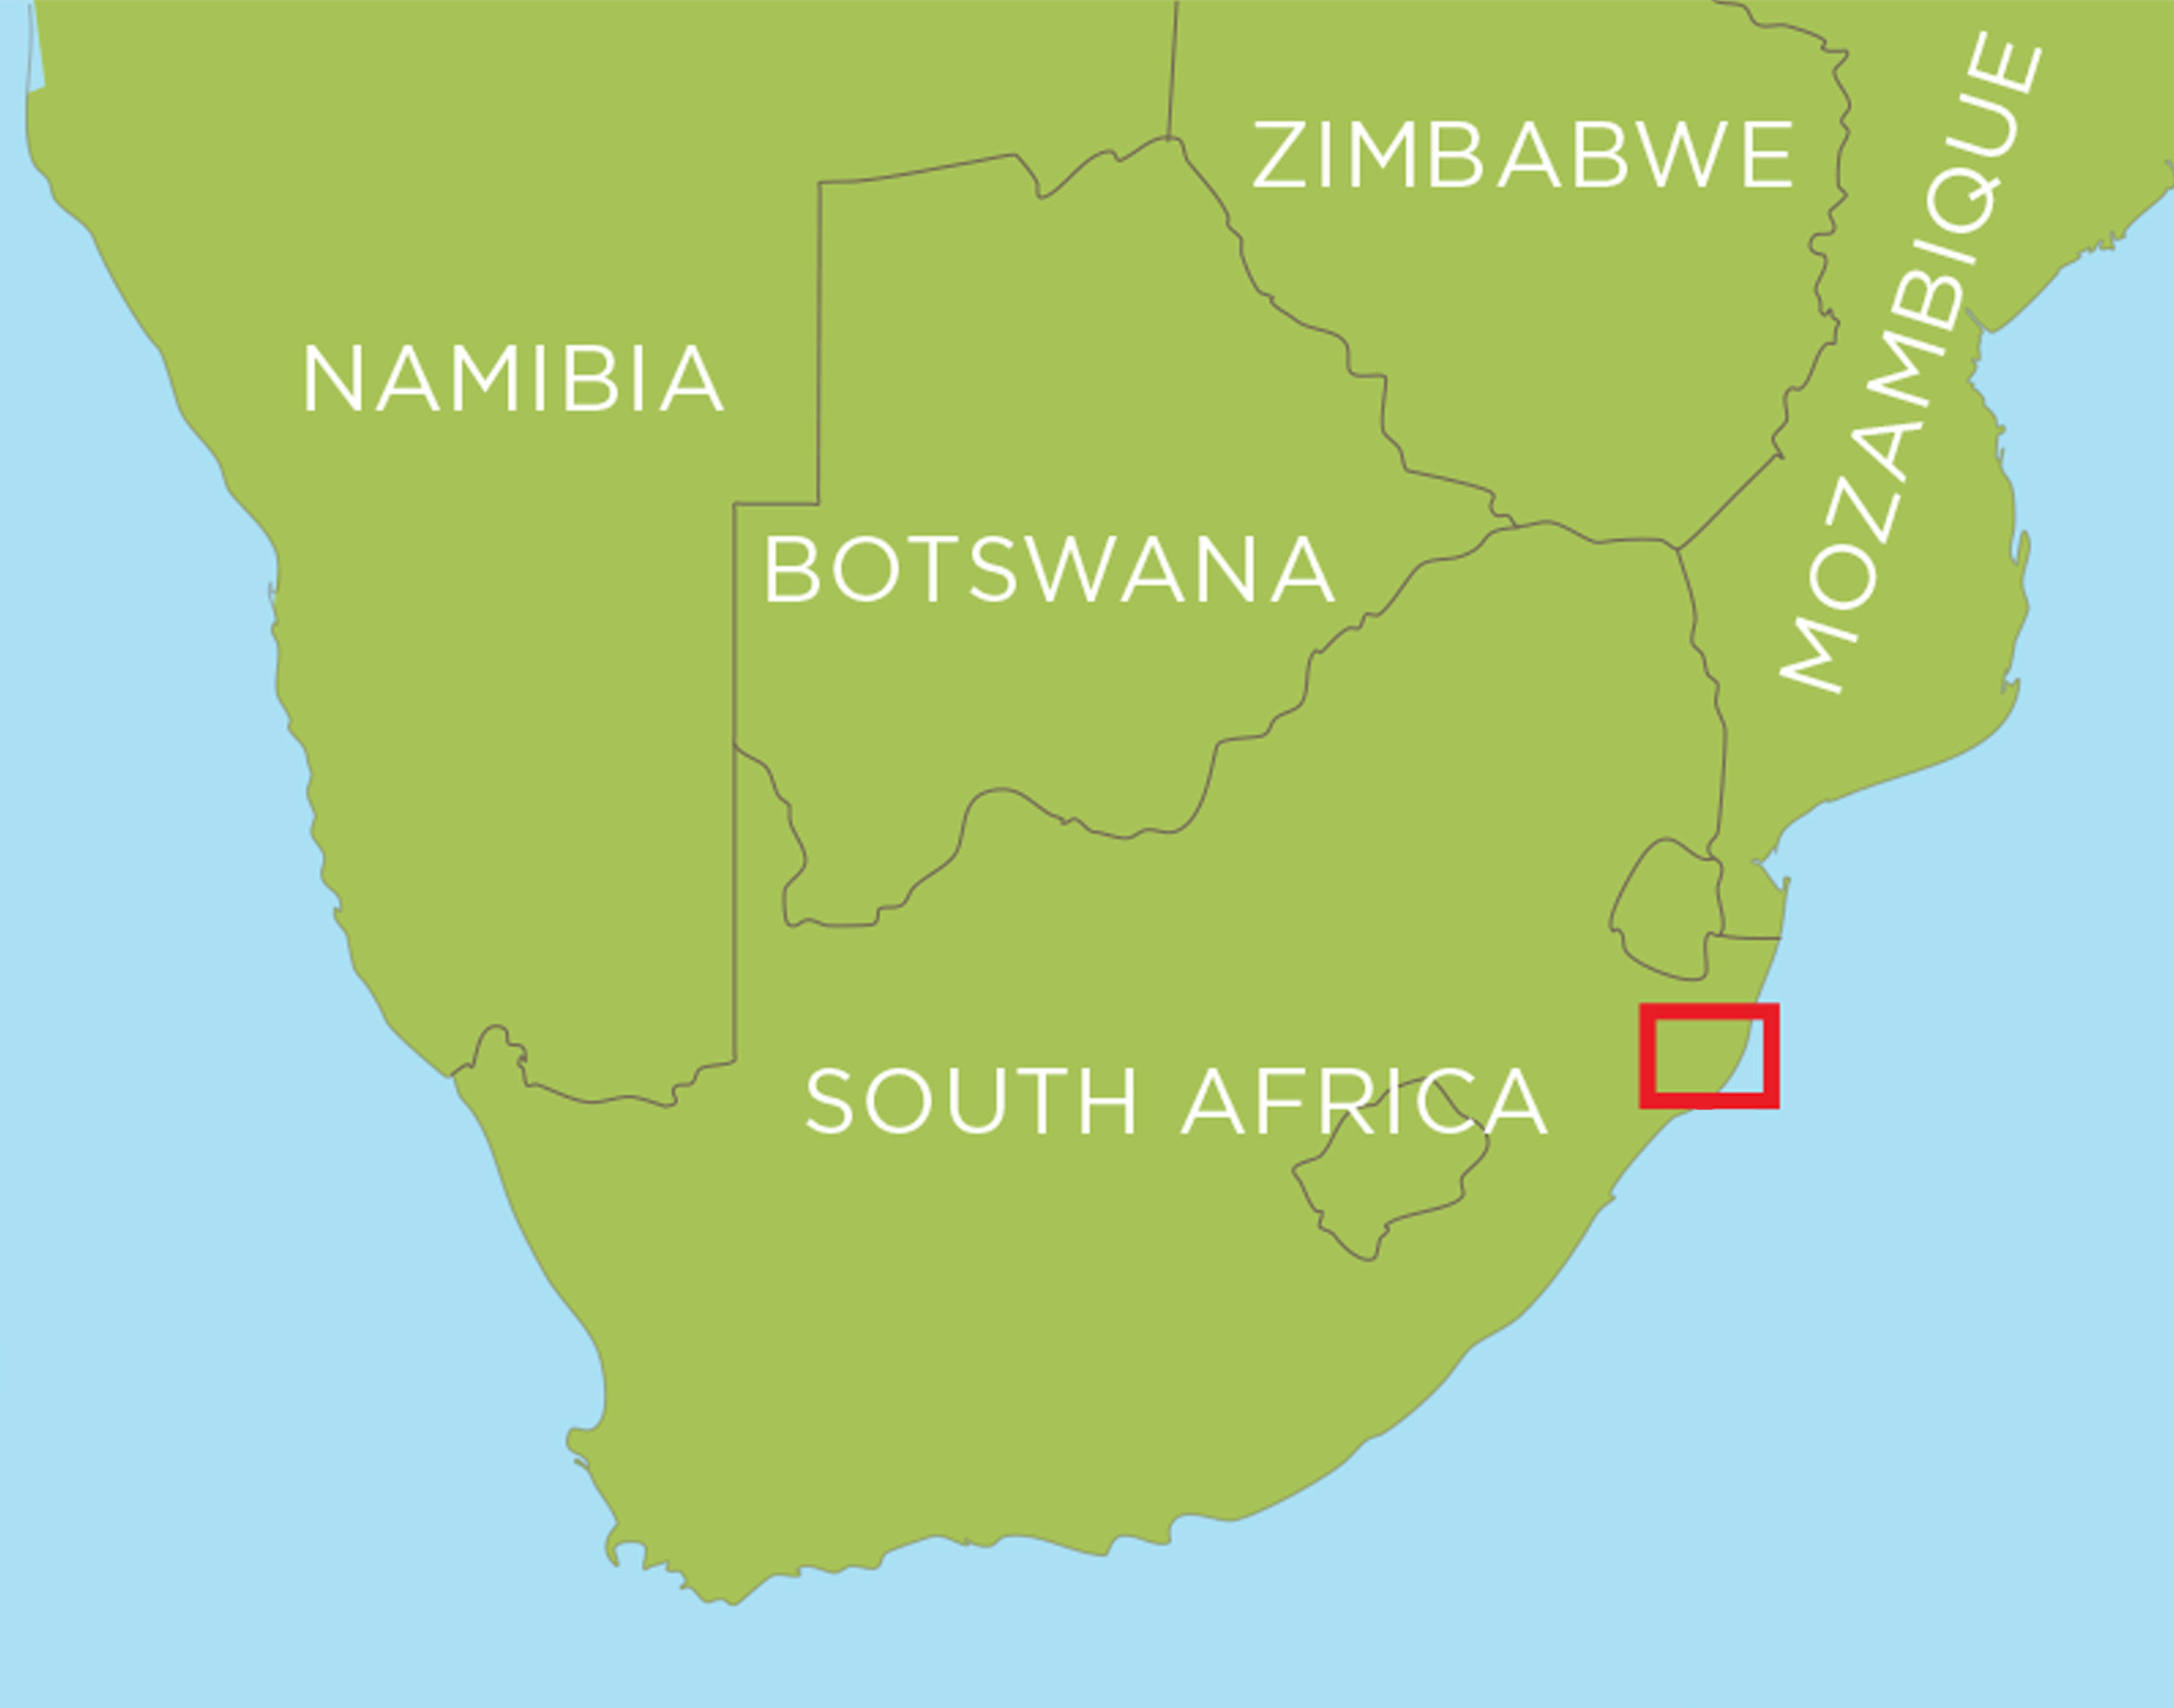 Copy of Located in Kwazulu-Natal on the east coast of South Africa